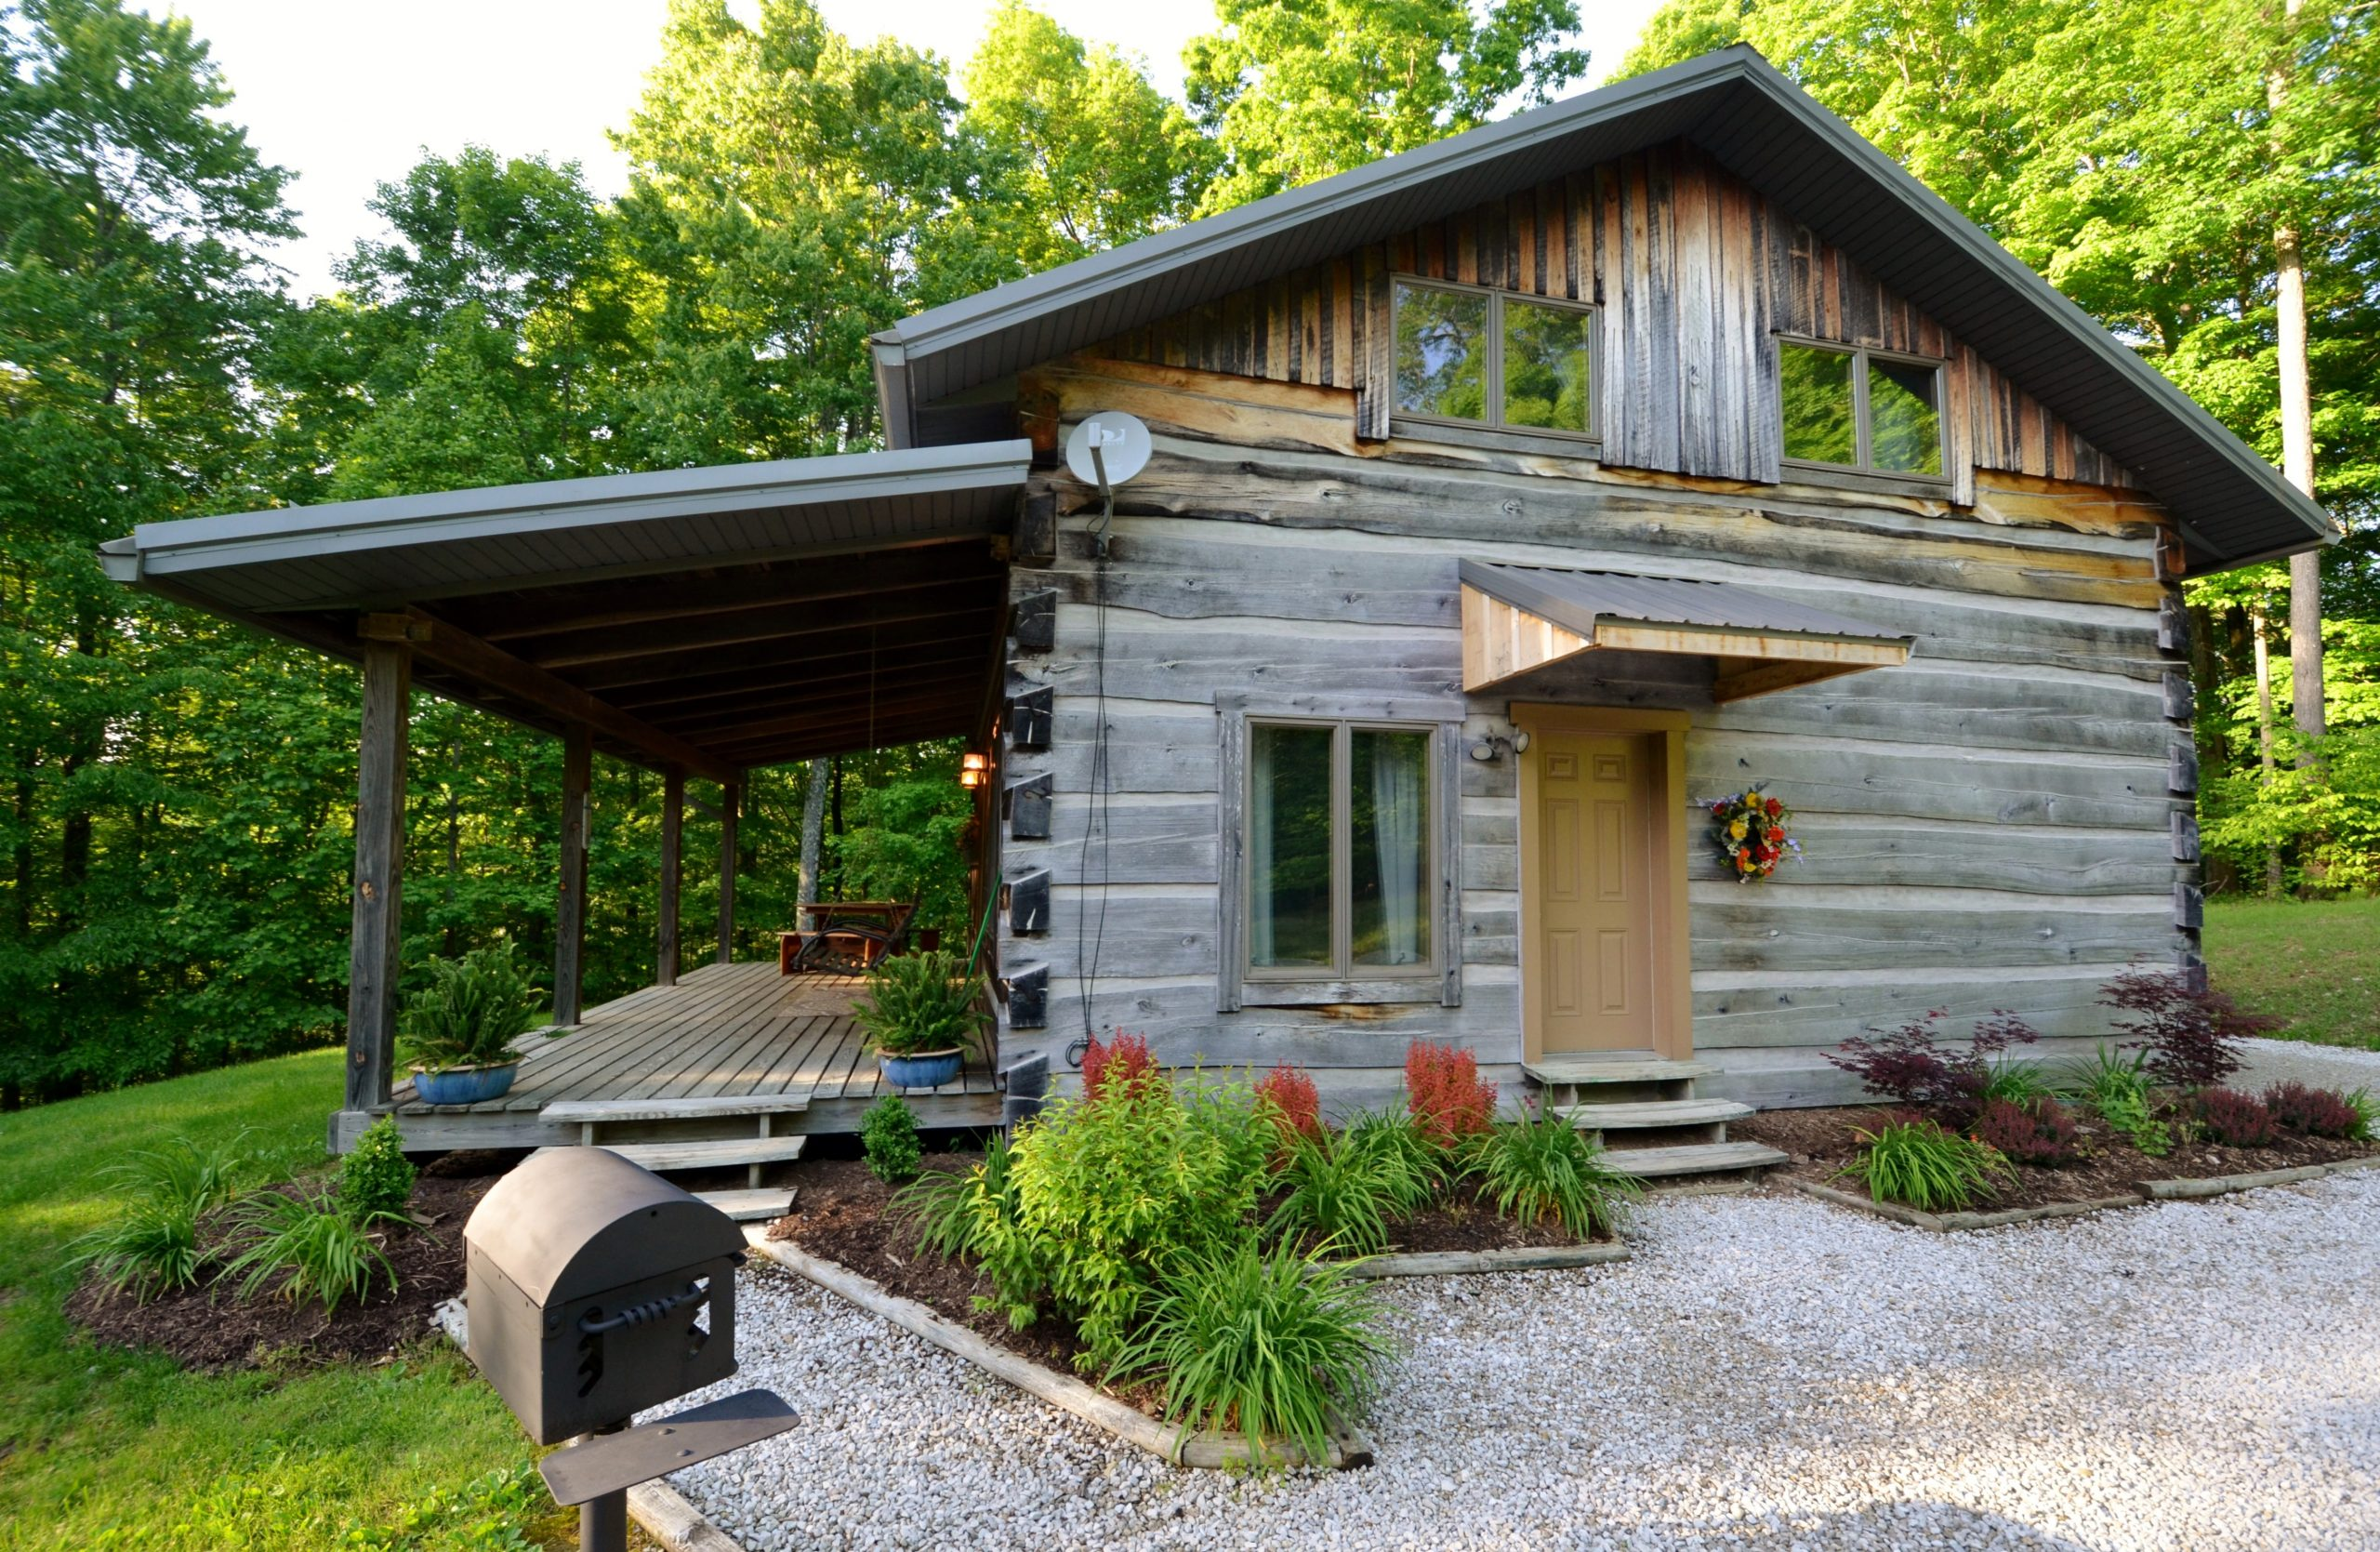 About Our Cabins